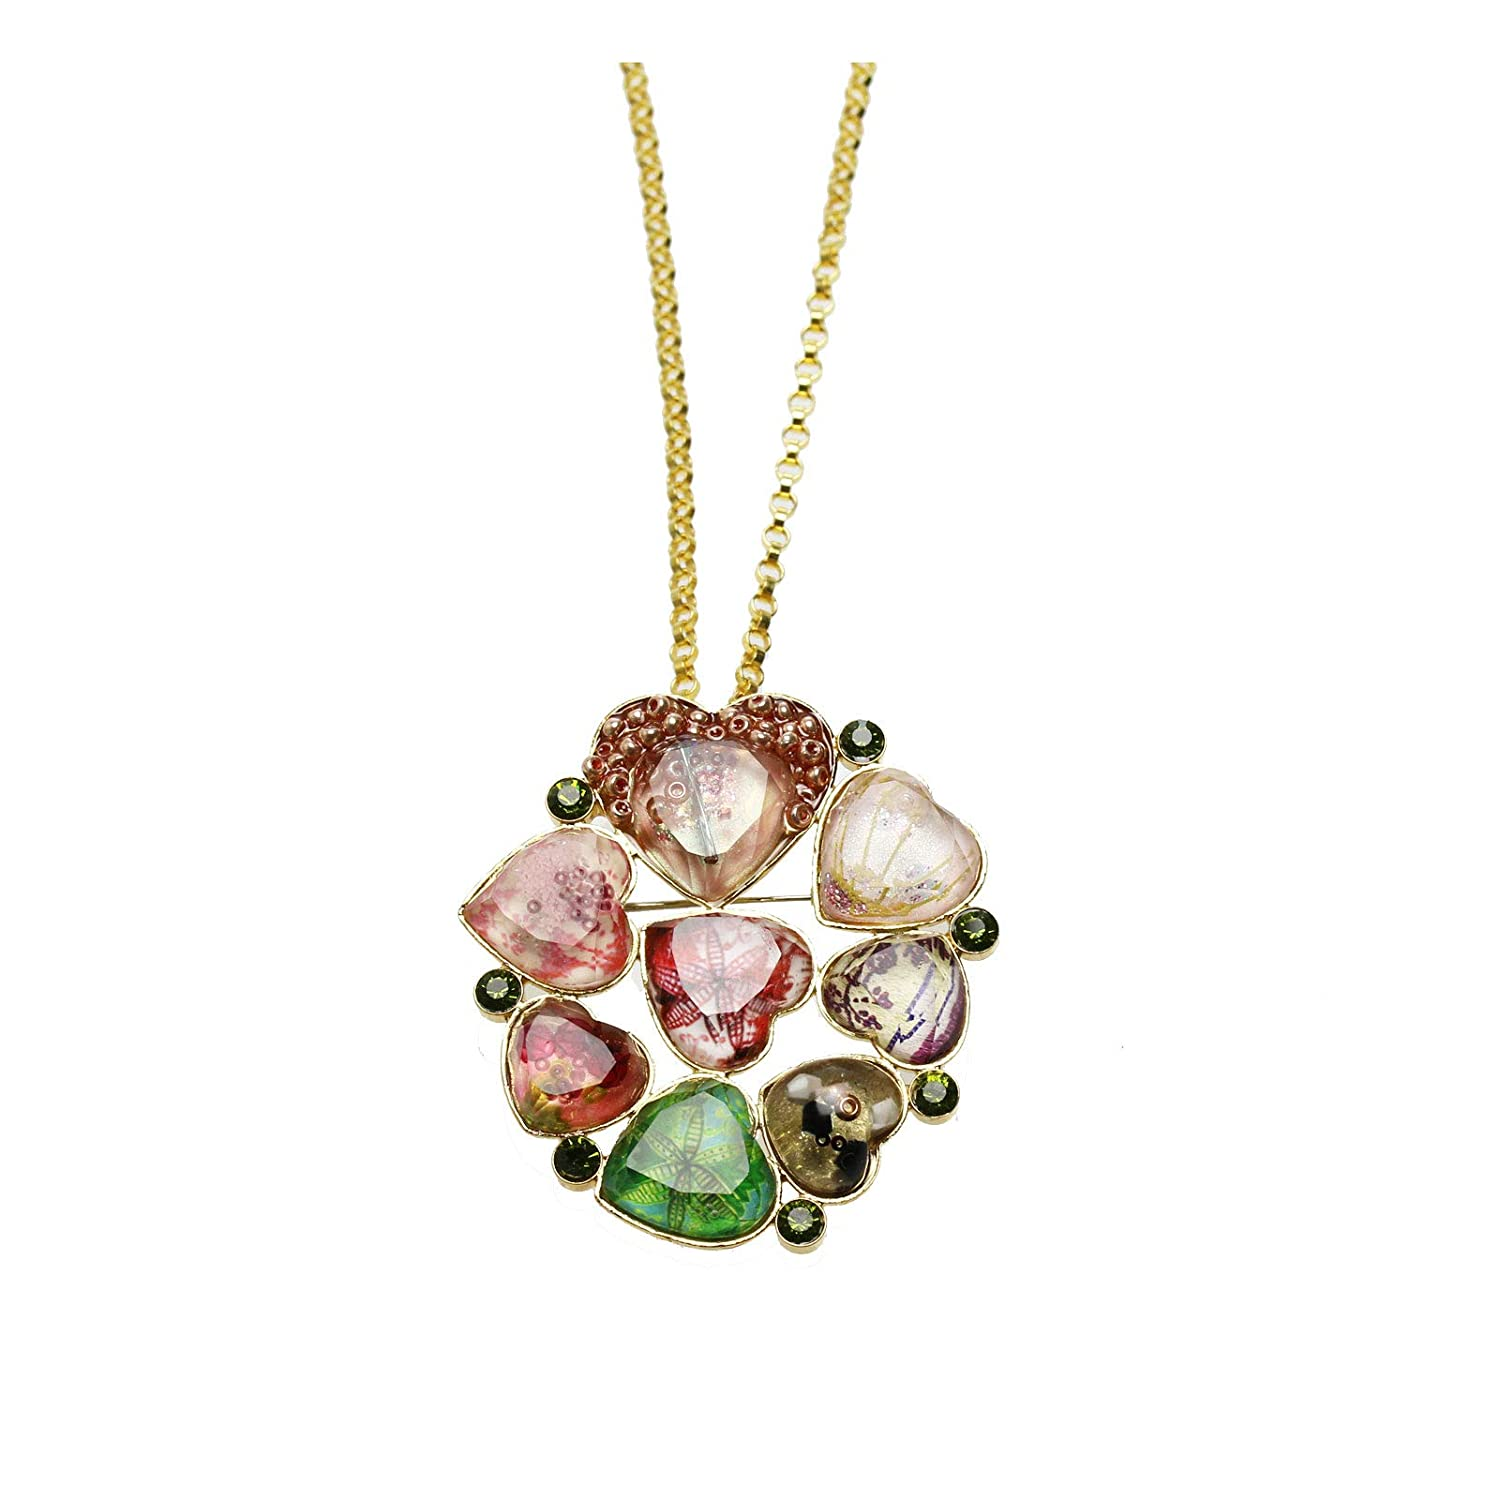 TAMARUSAN Brooch Necklace Gorgeous Pink Green